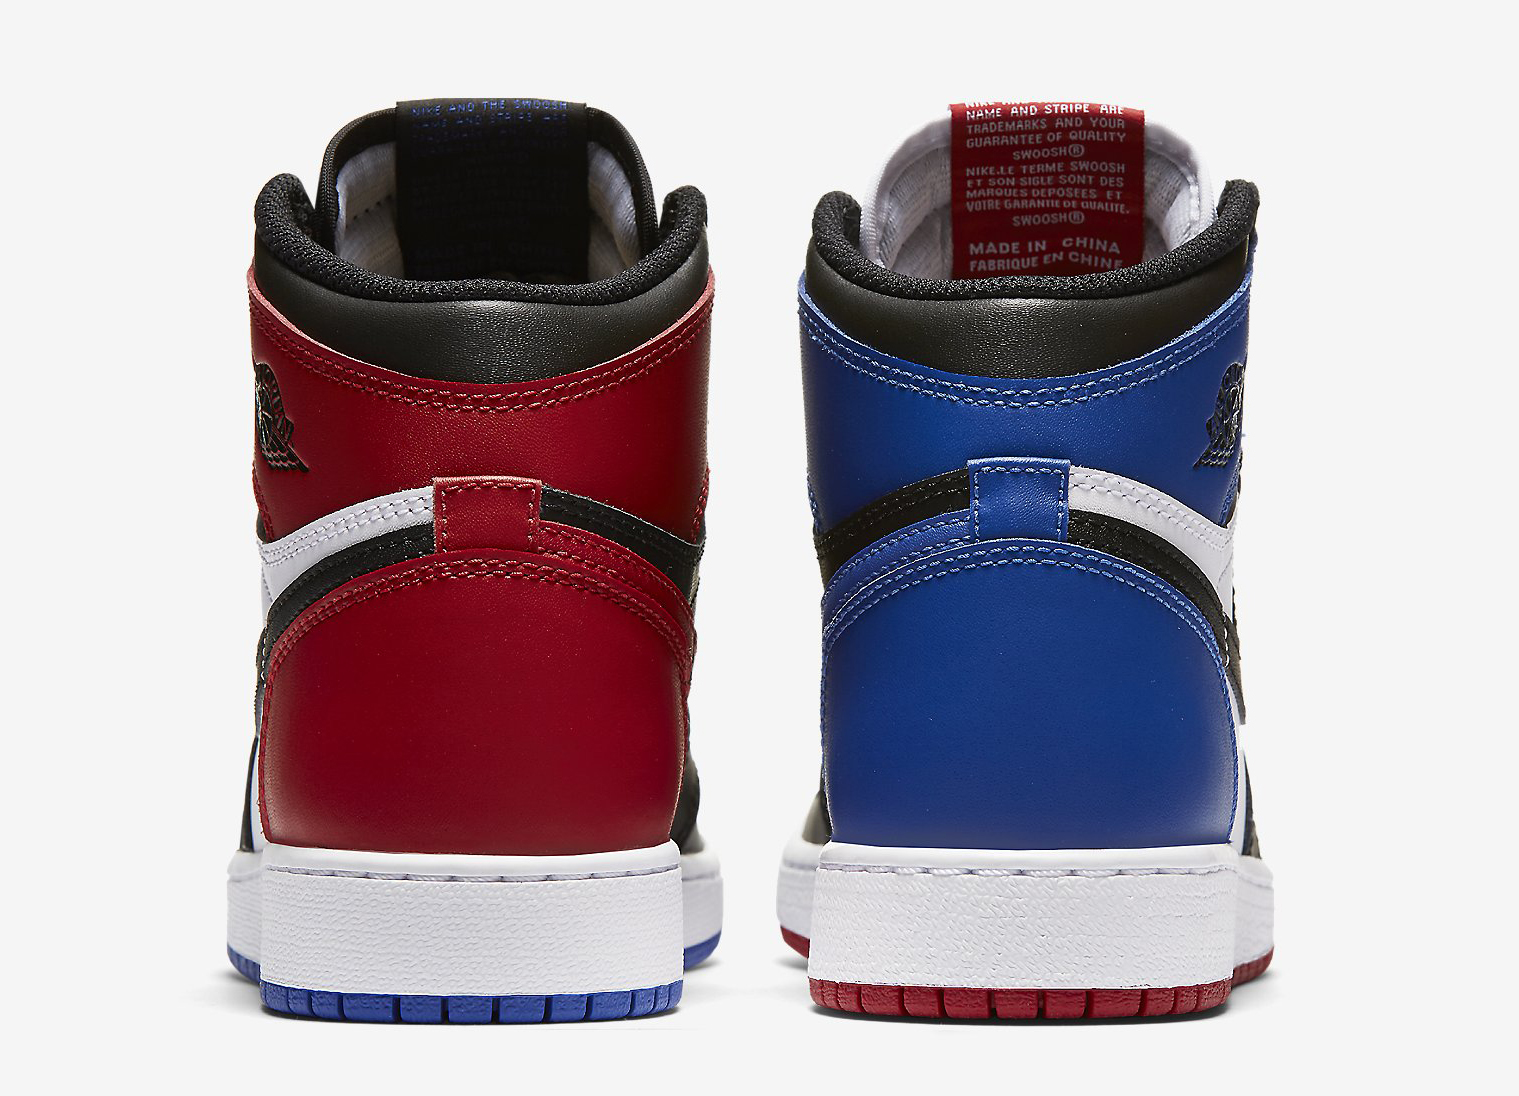 73c44012630 Top Three Air Jordan 1 GS 575441-026 | Sole Collector